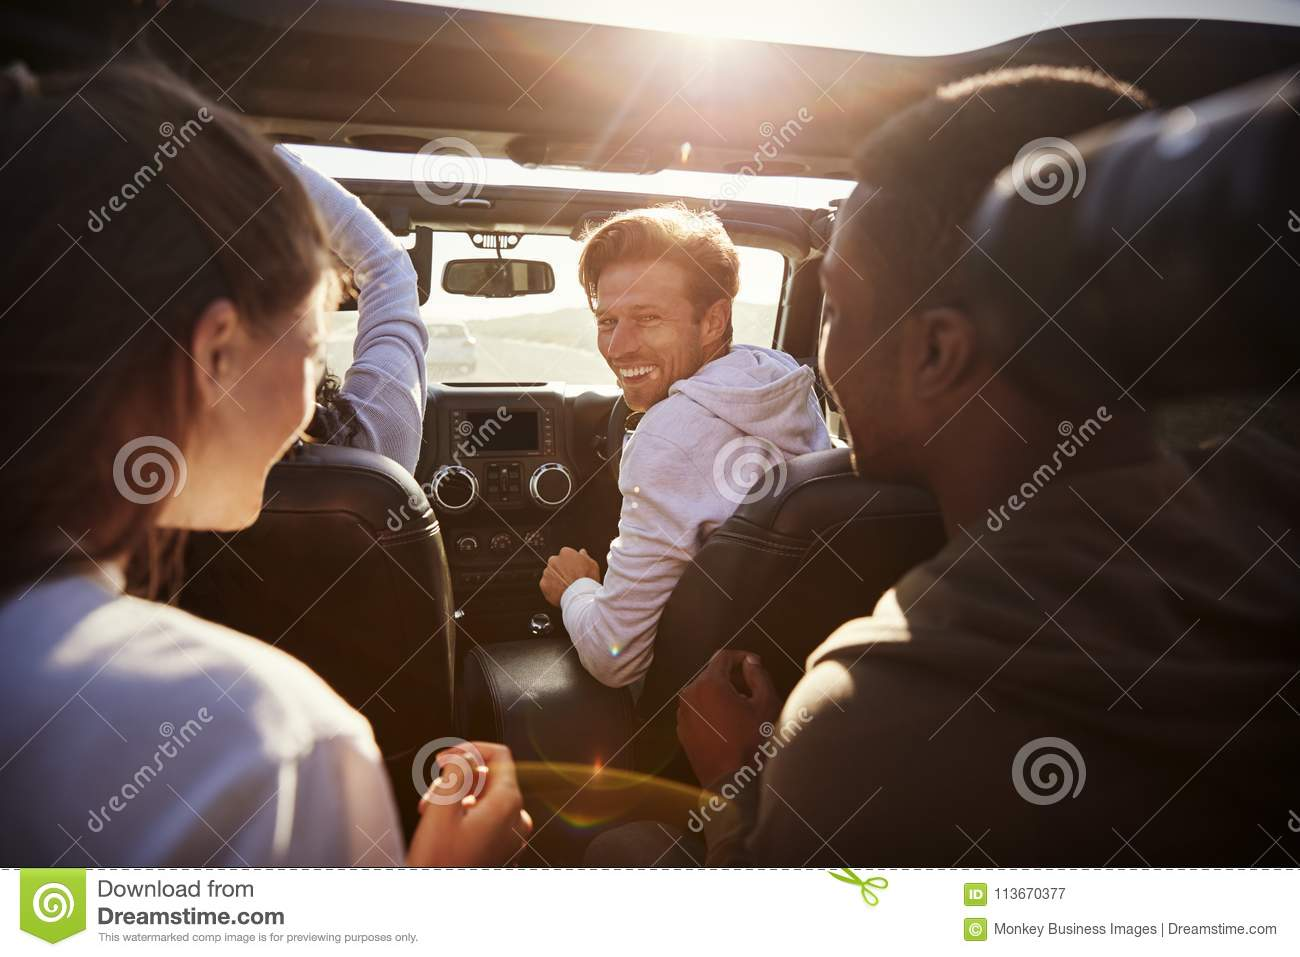 Four young adult friends together in a car on a road trip